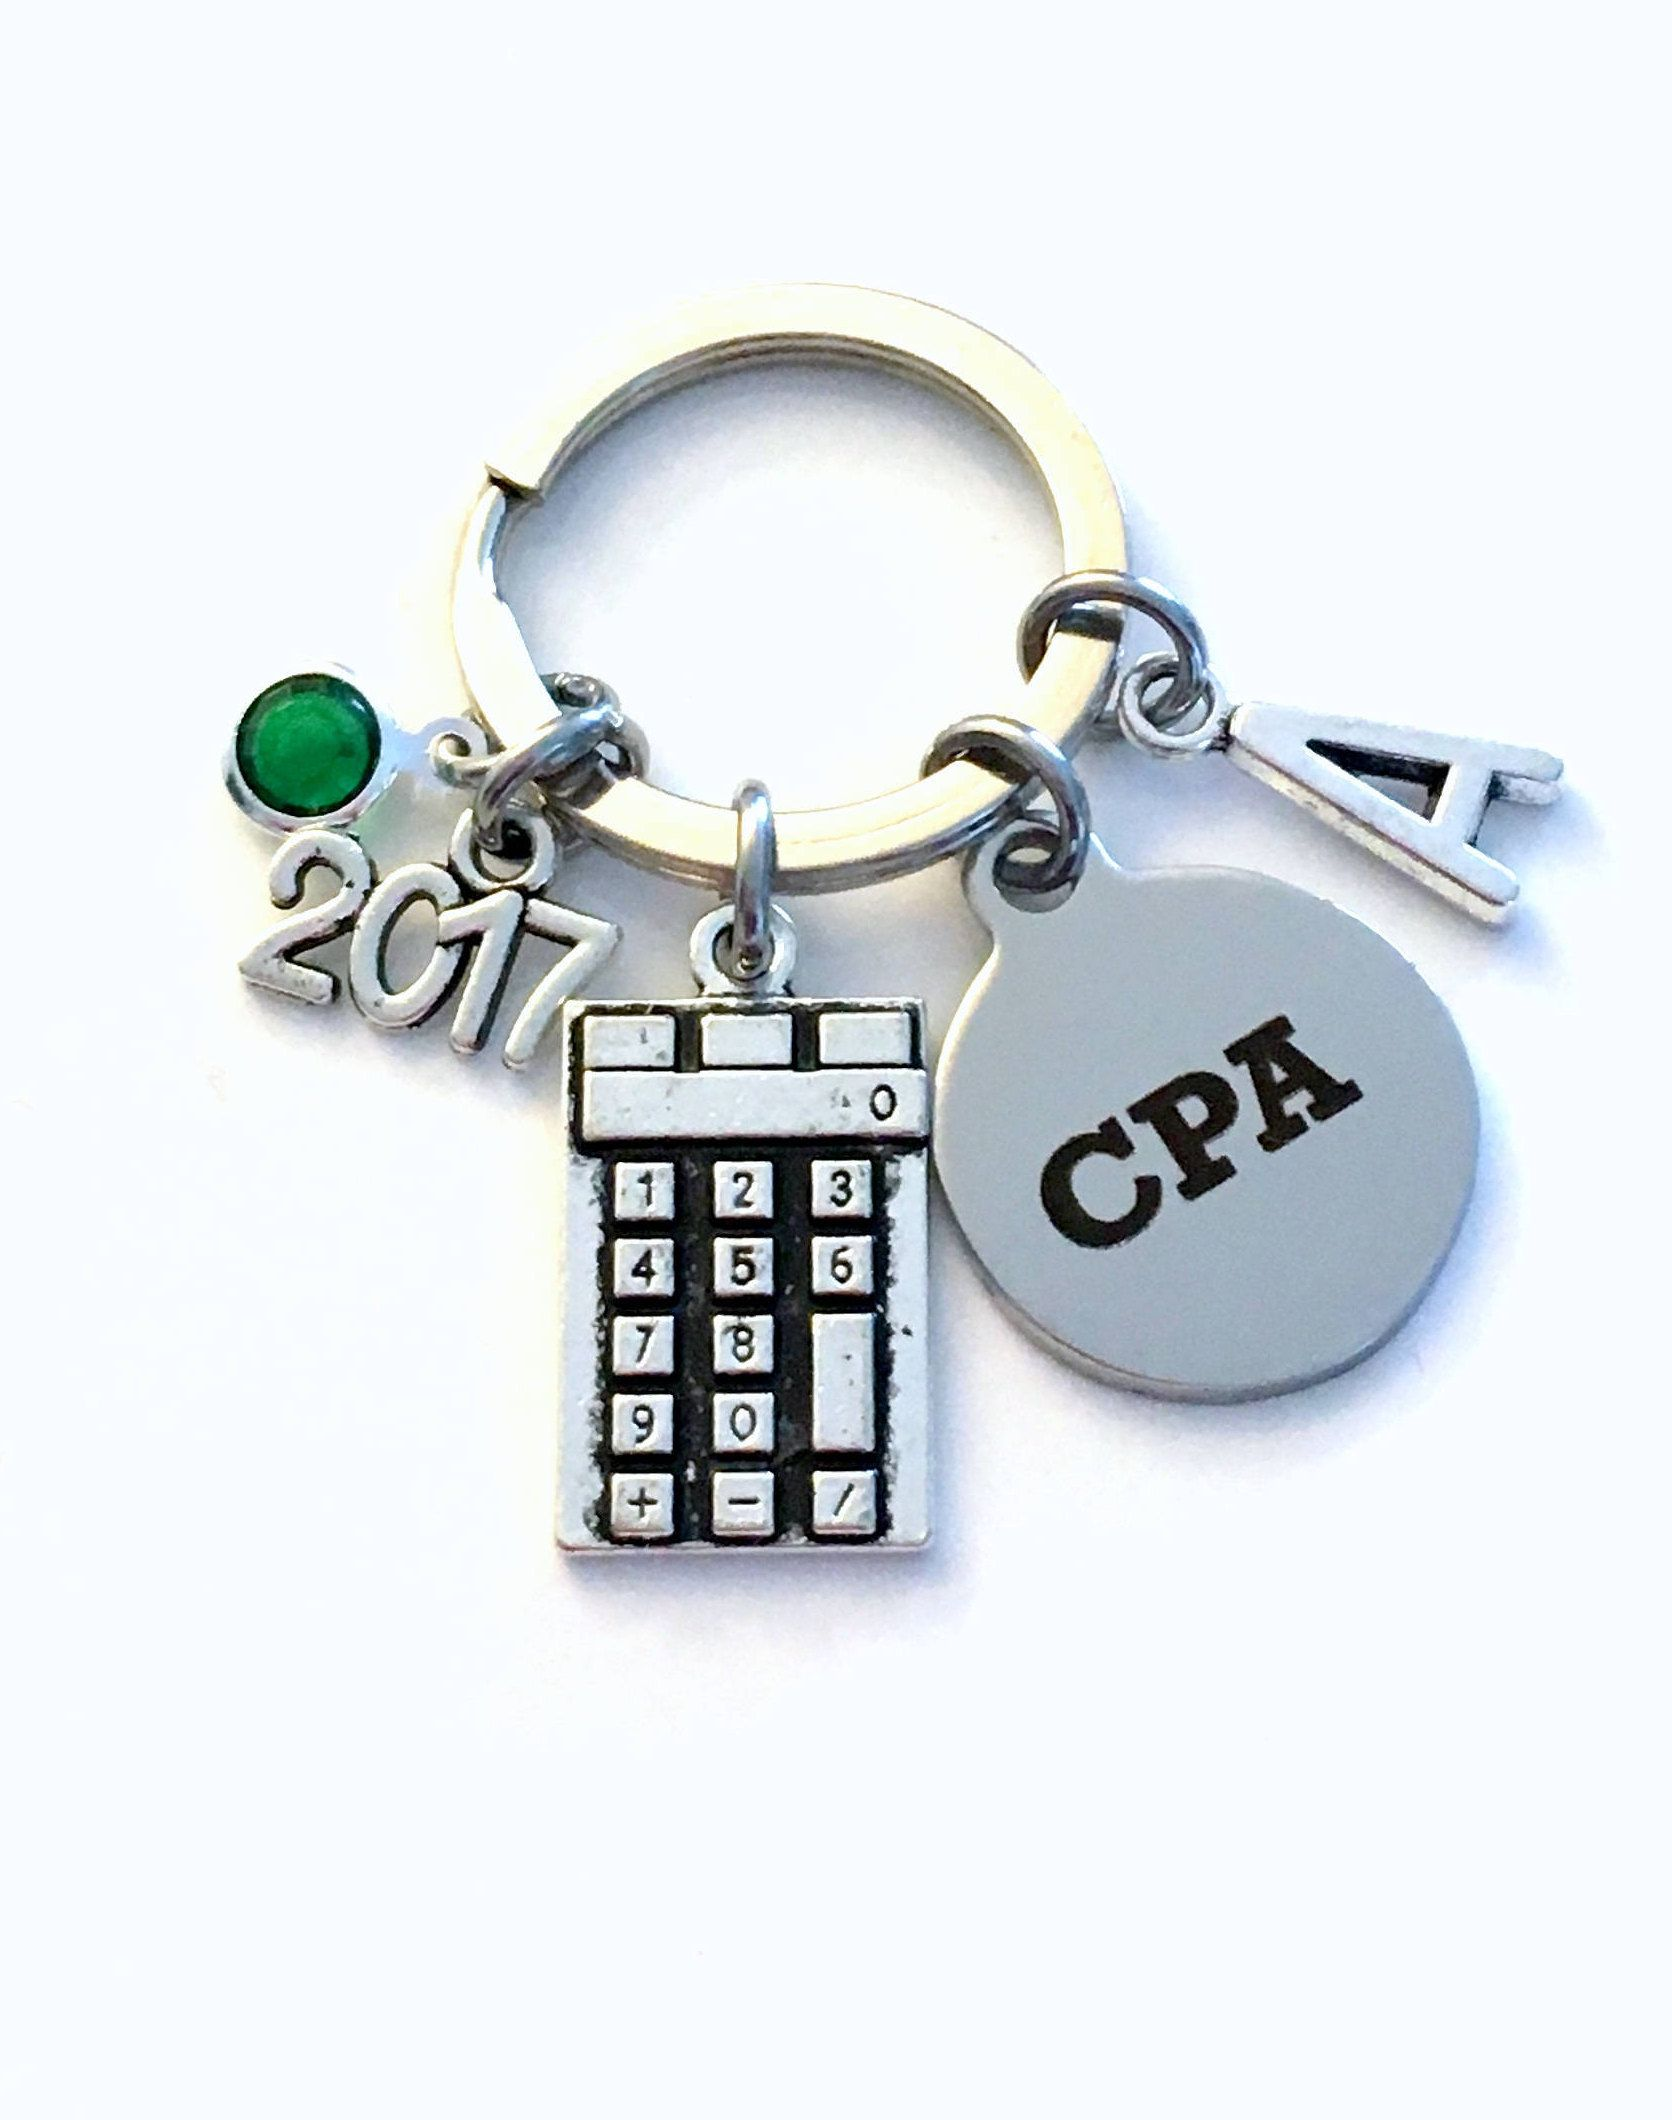 Chartered Accountant Cpa Graduation Gift For Accountant Retirement Cpa Key Chain 2017